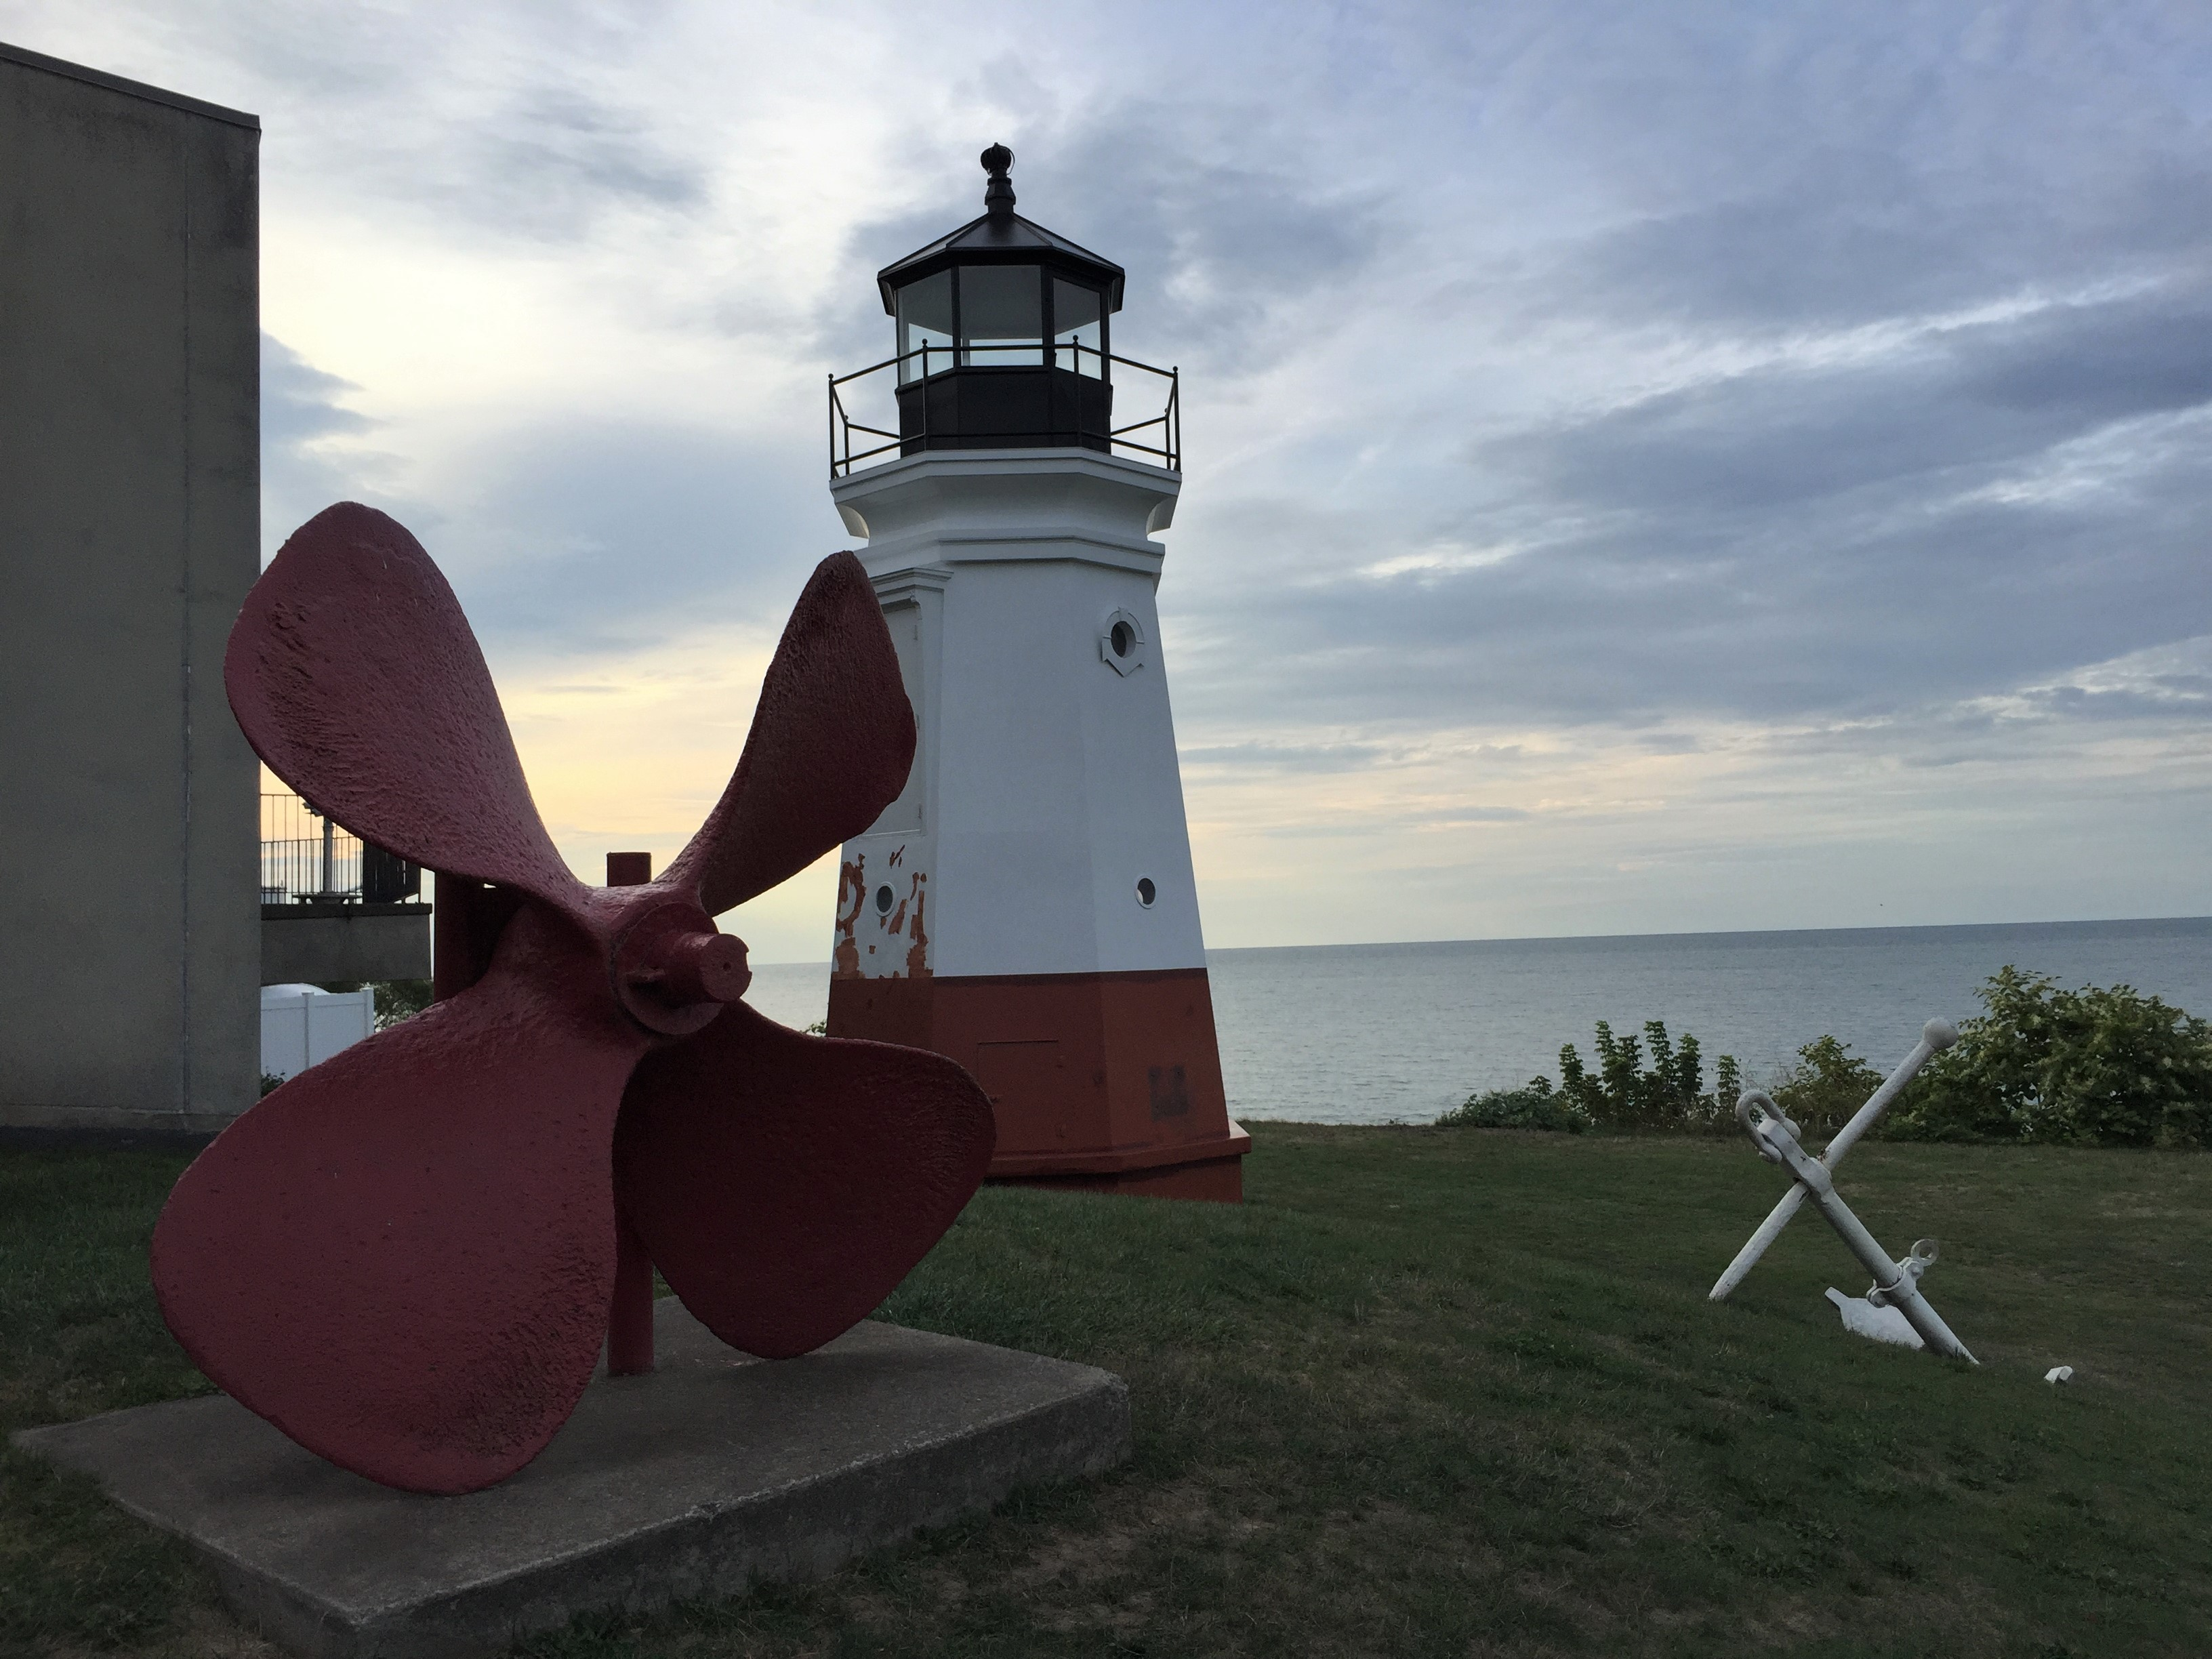 Vermilion Lighthouse, Vermilion, Ohio (Photo: Sarah Sundin, August 2016)